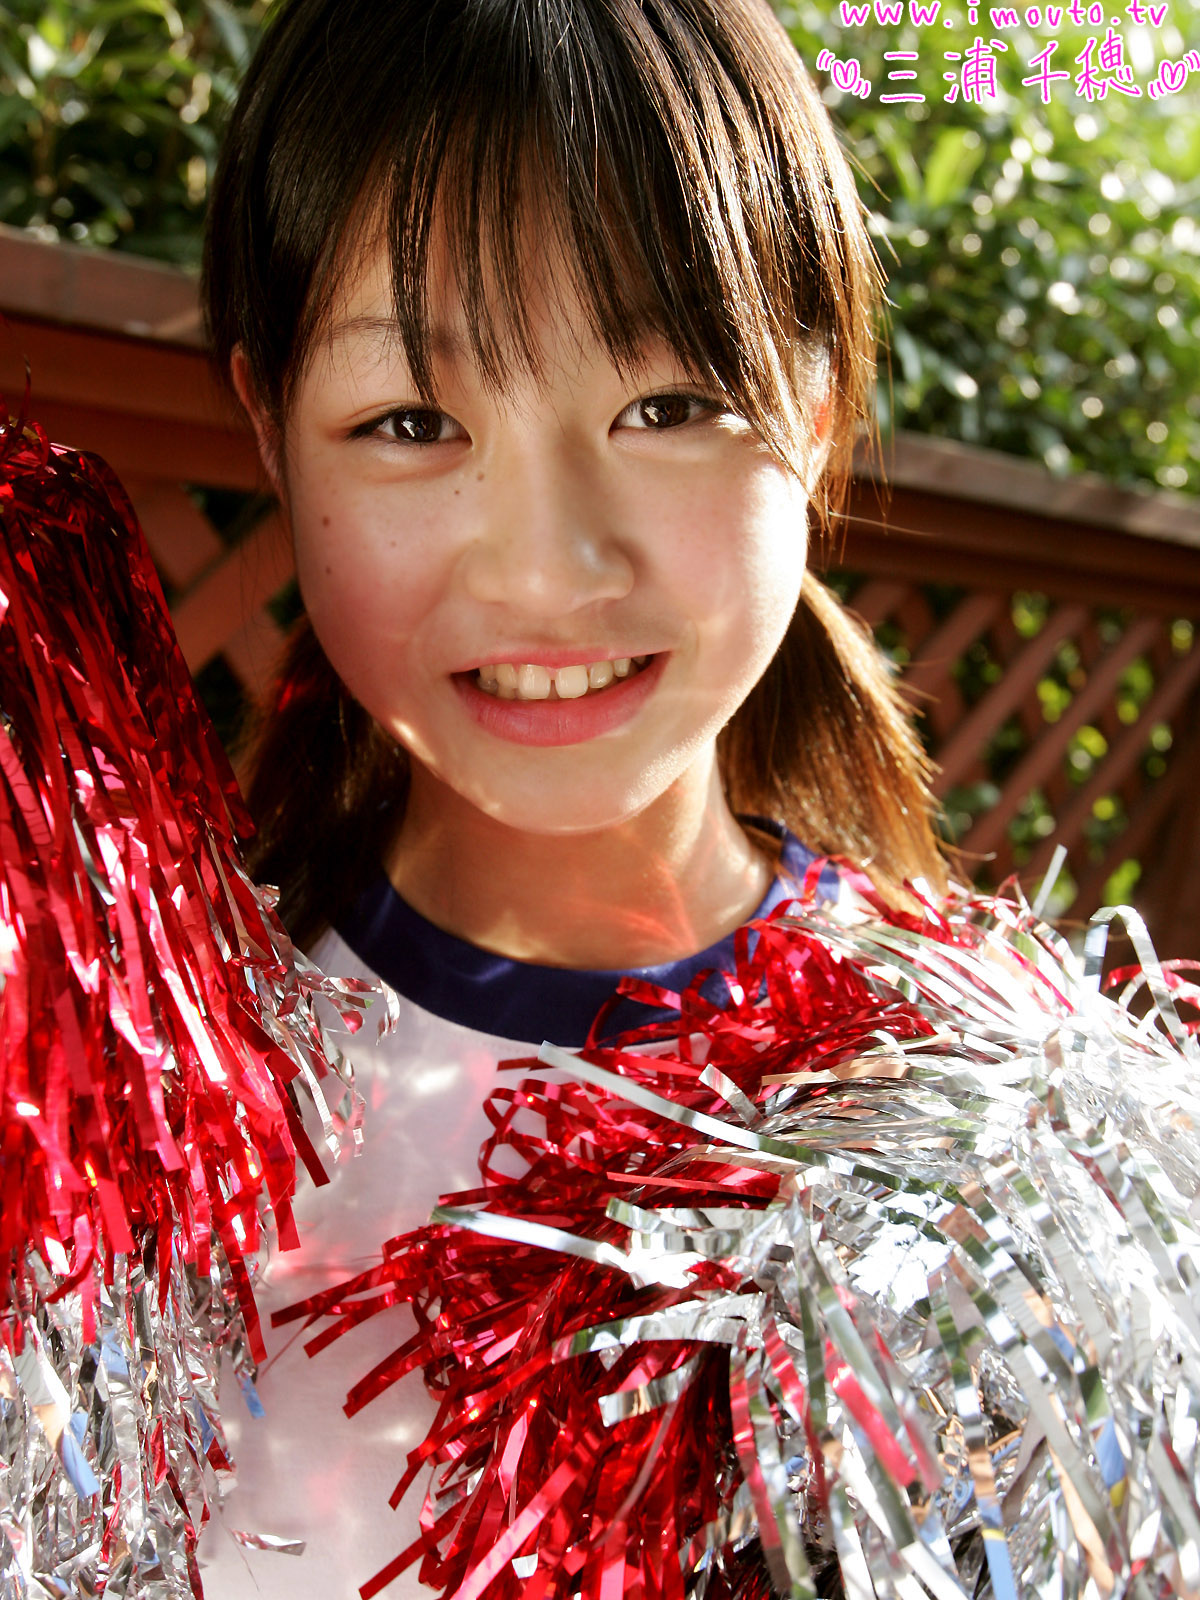 images of Sasaki Junior Idol U15 Eu Gallery Oimo 496